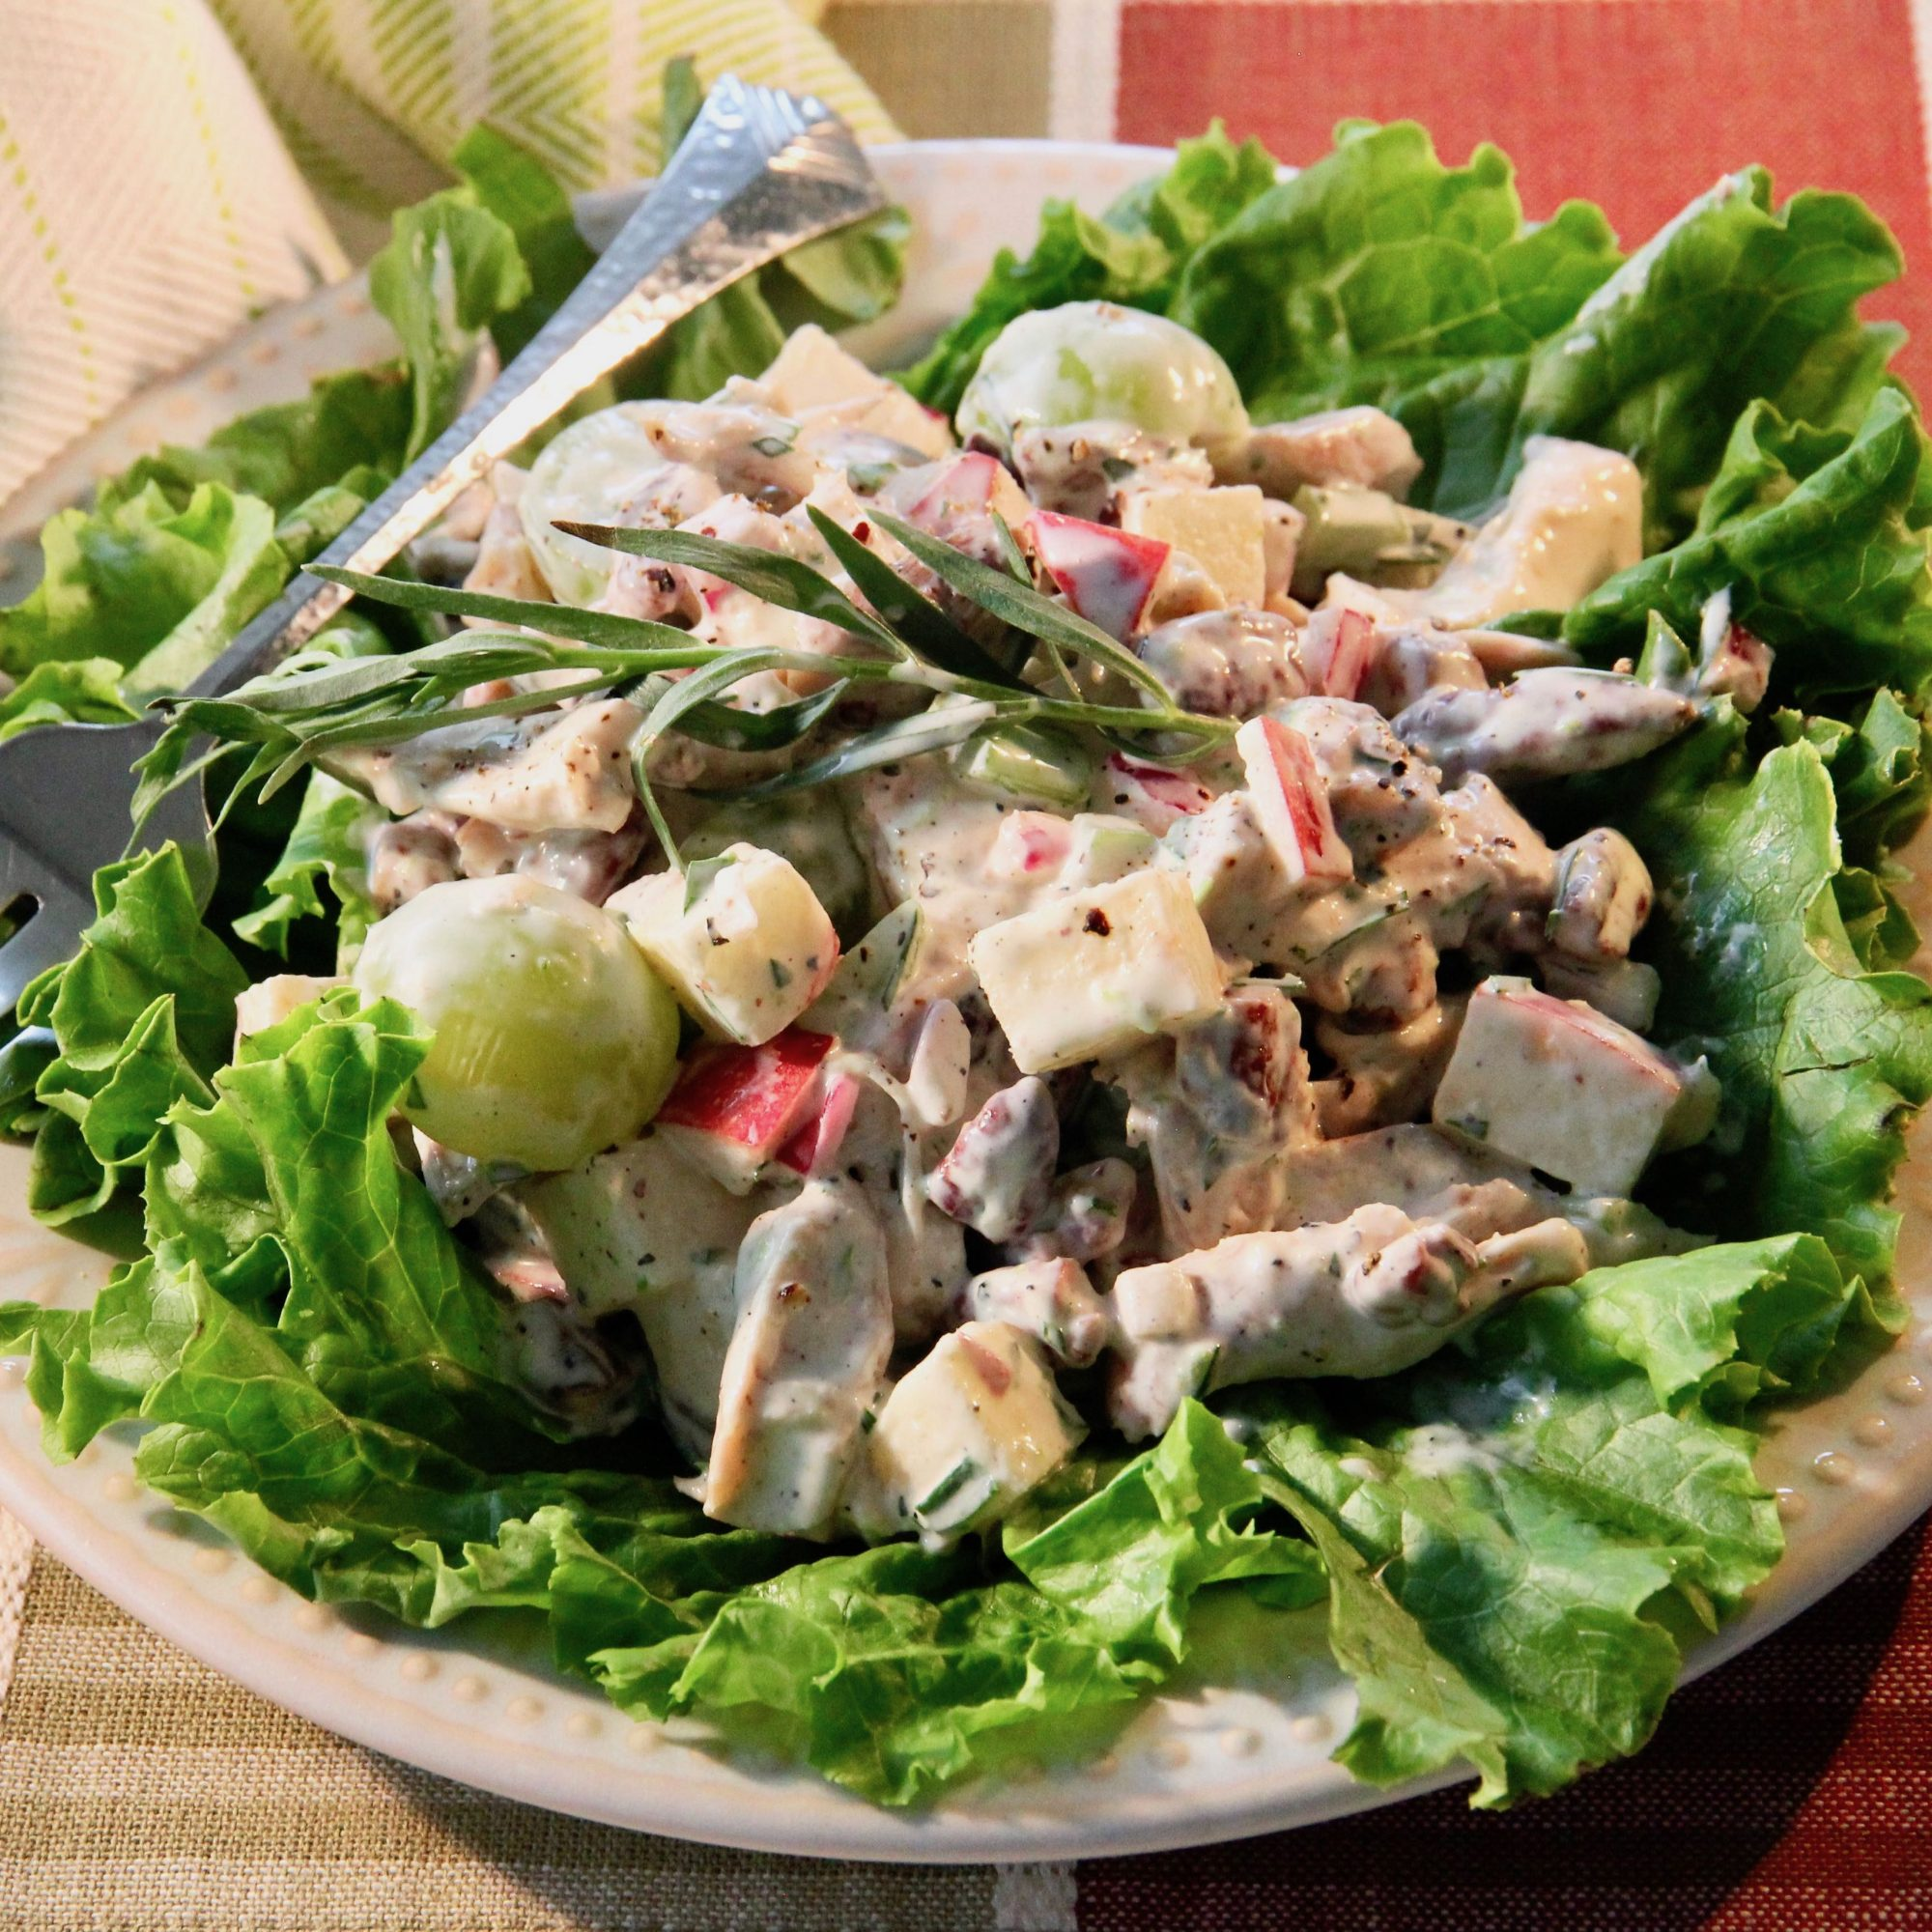 Fruity Chicken Salad with Tarragon served on a bed of lettuce